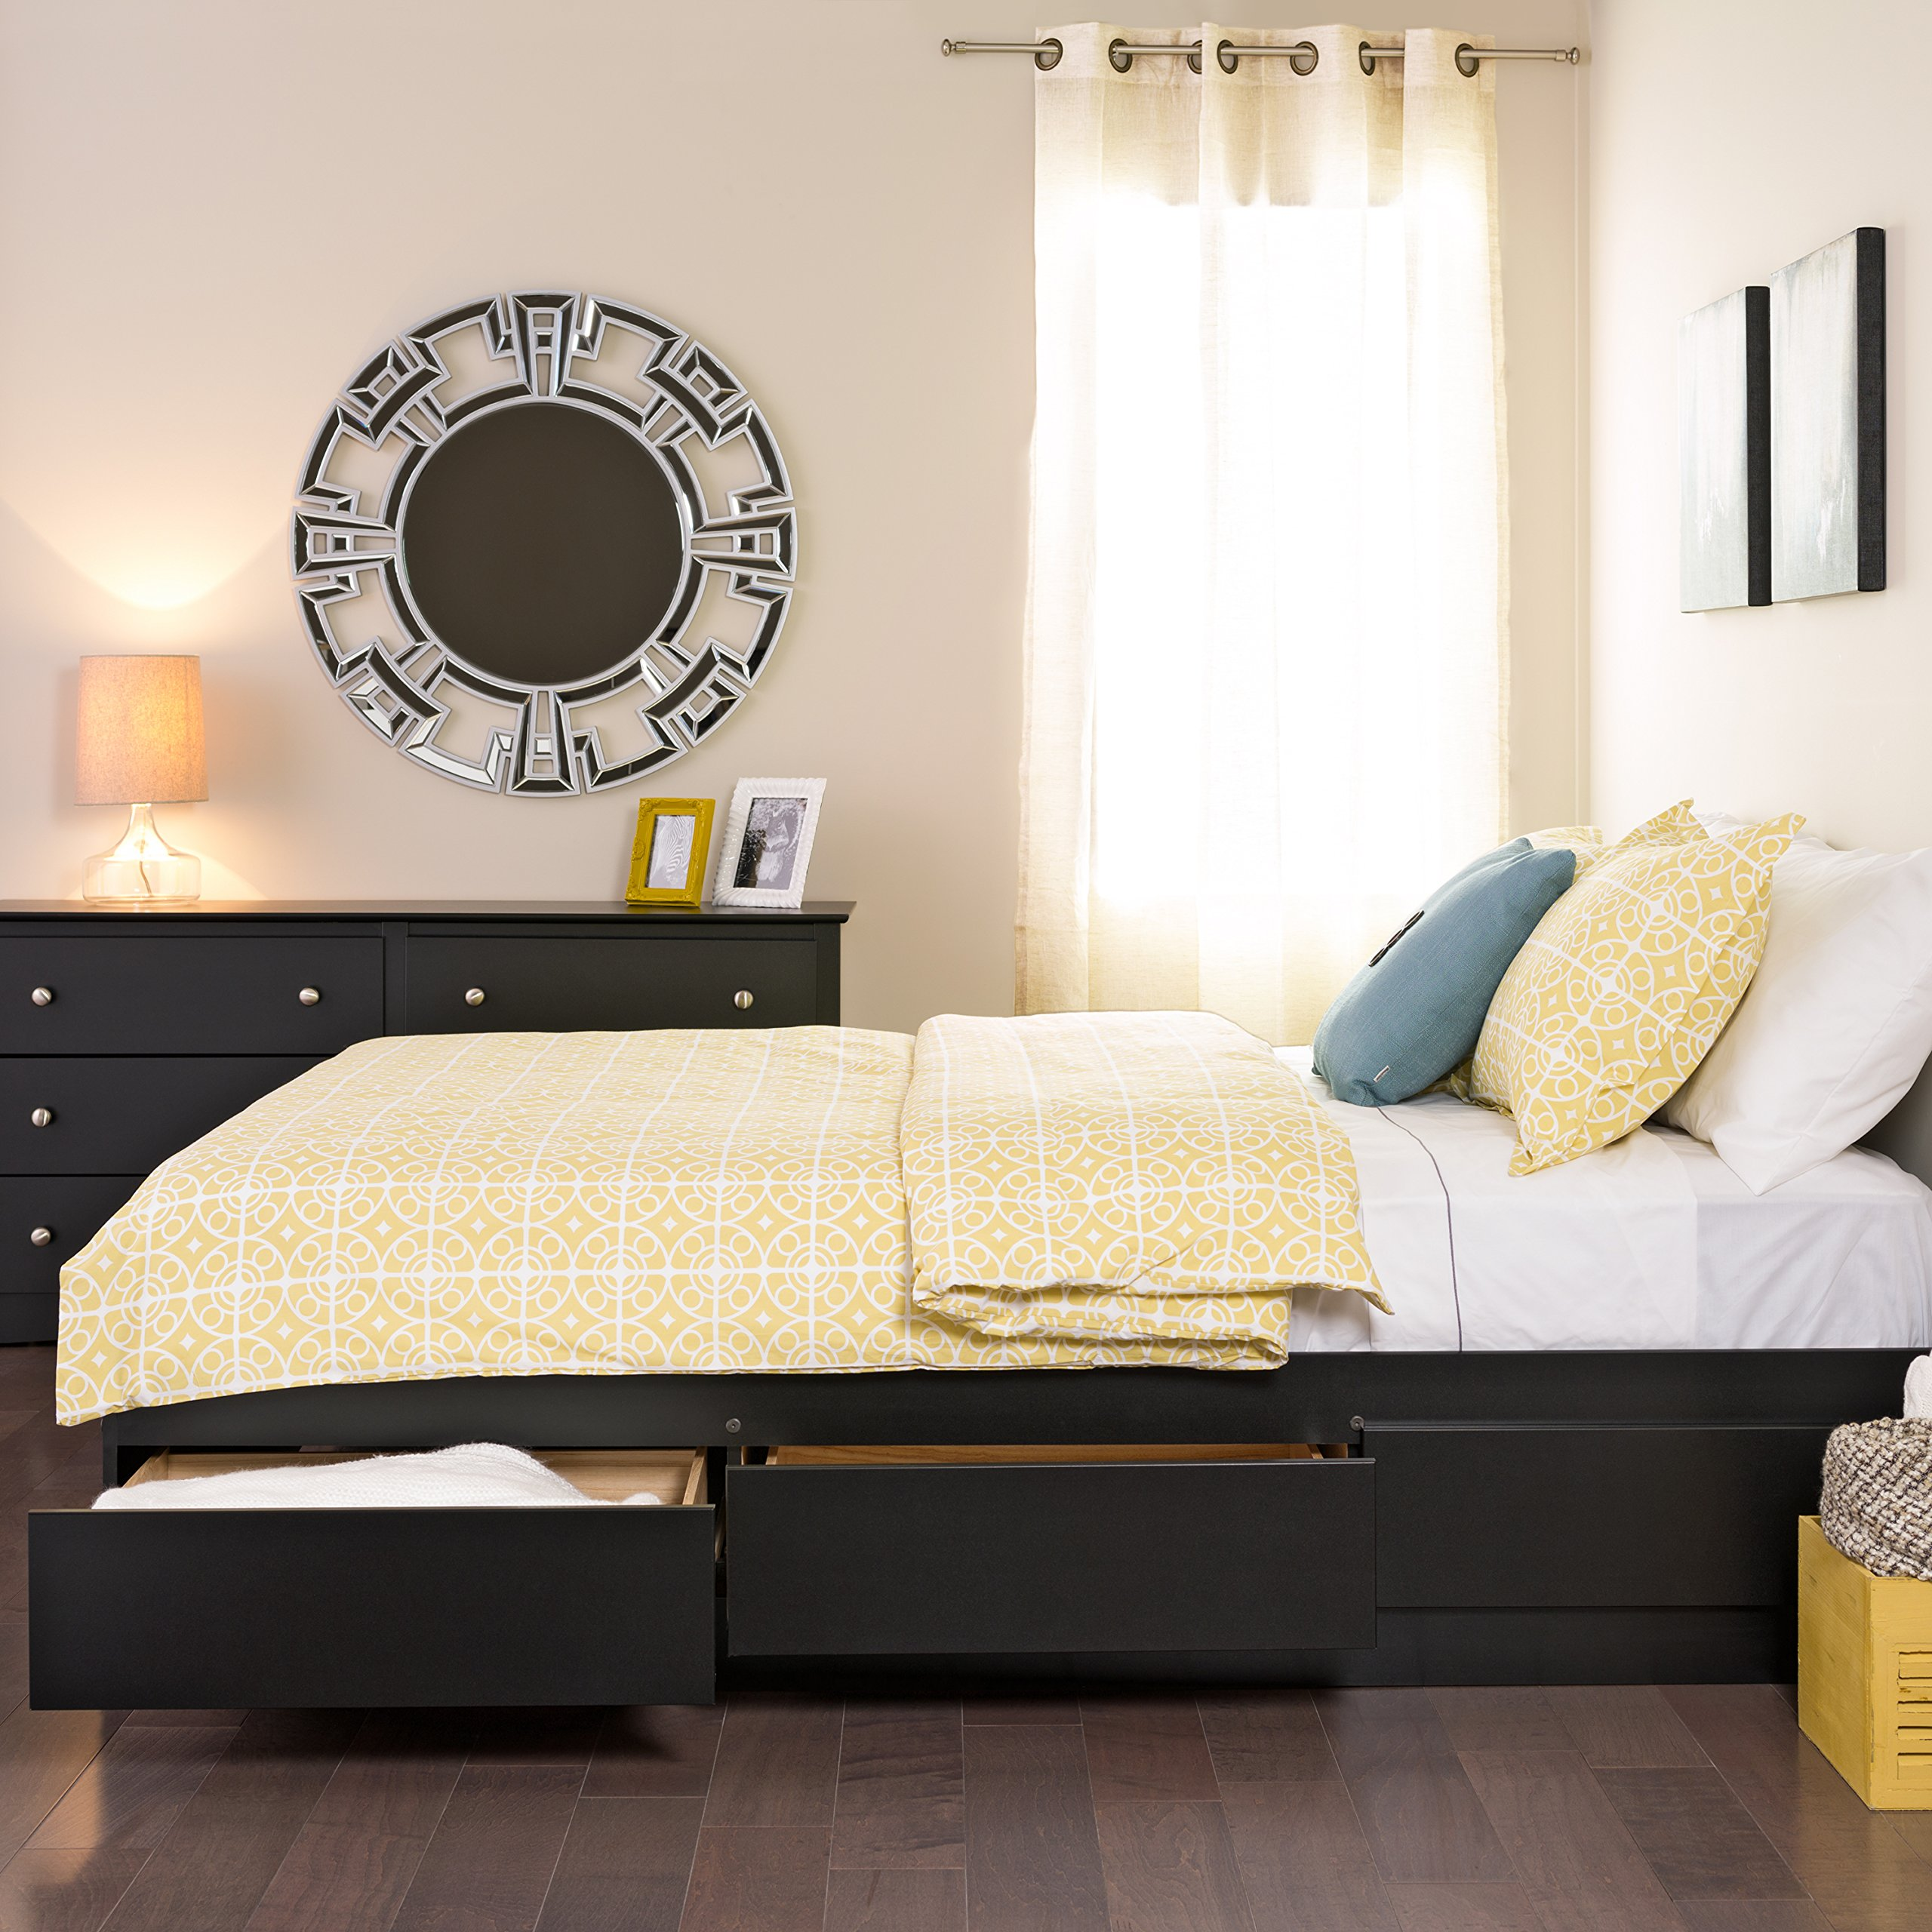 Prepac BBQ-6200-3K Queen Sonoma Platform Storage Bed with 6 Drawers, Black by Prepac